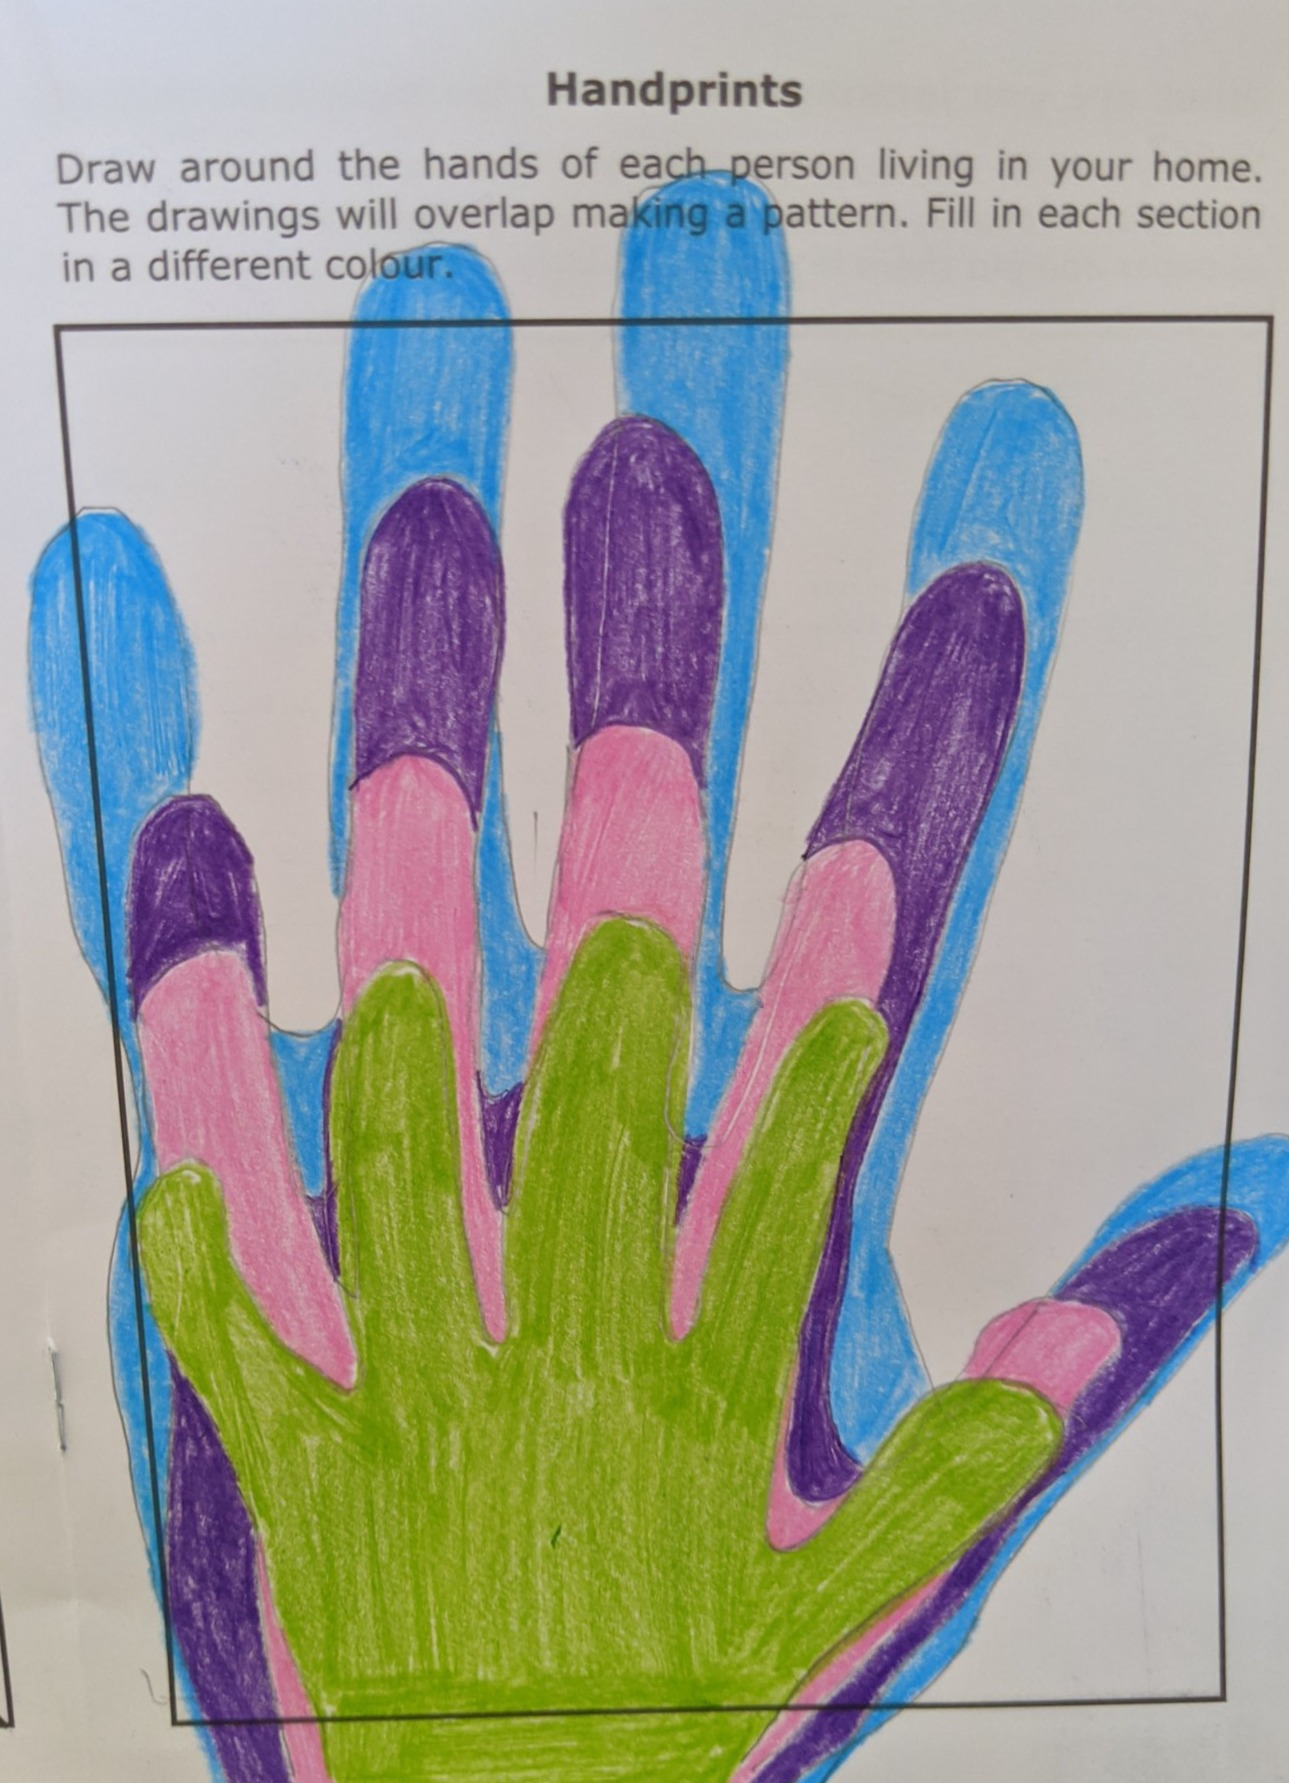 Handprints by St Mary's CE Primary School student